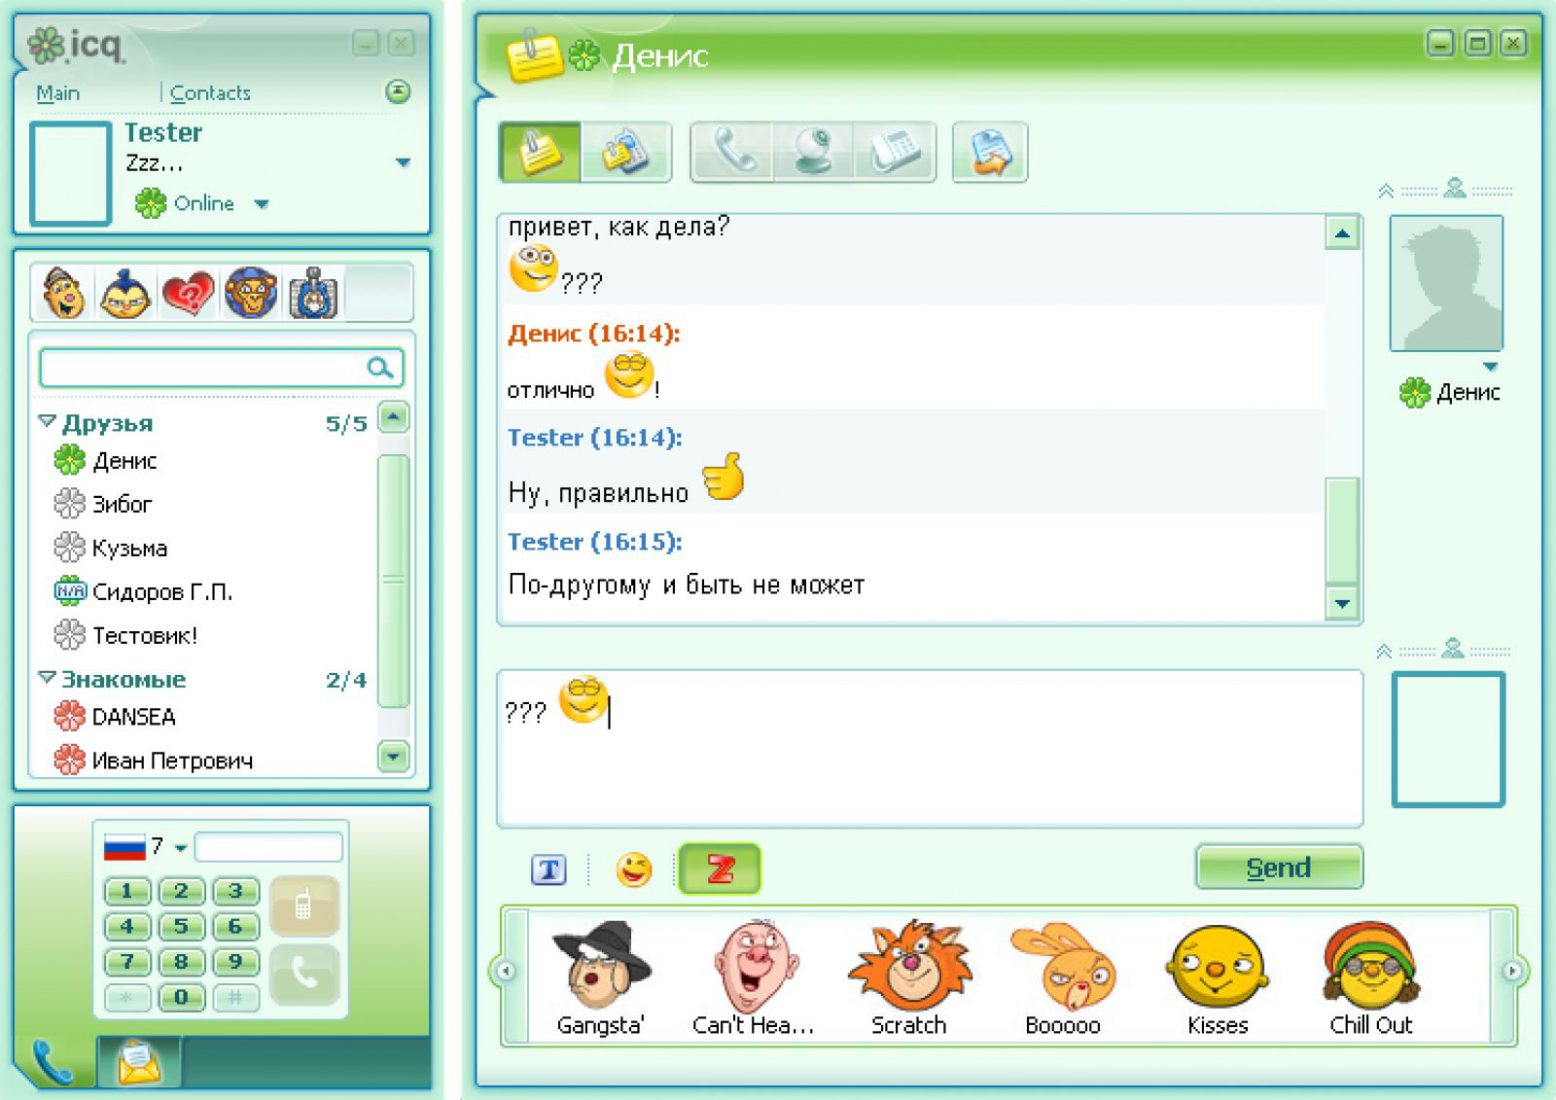 Icq Sex Chat Thai, Evelive Sexchat